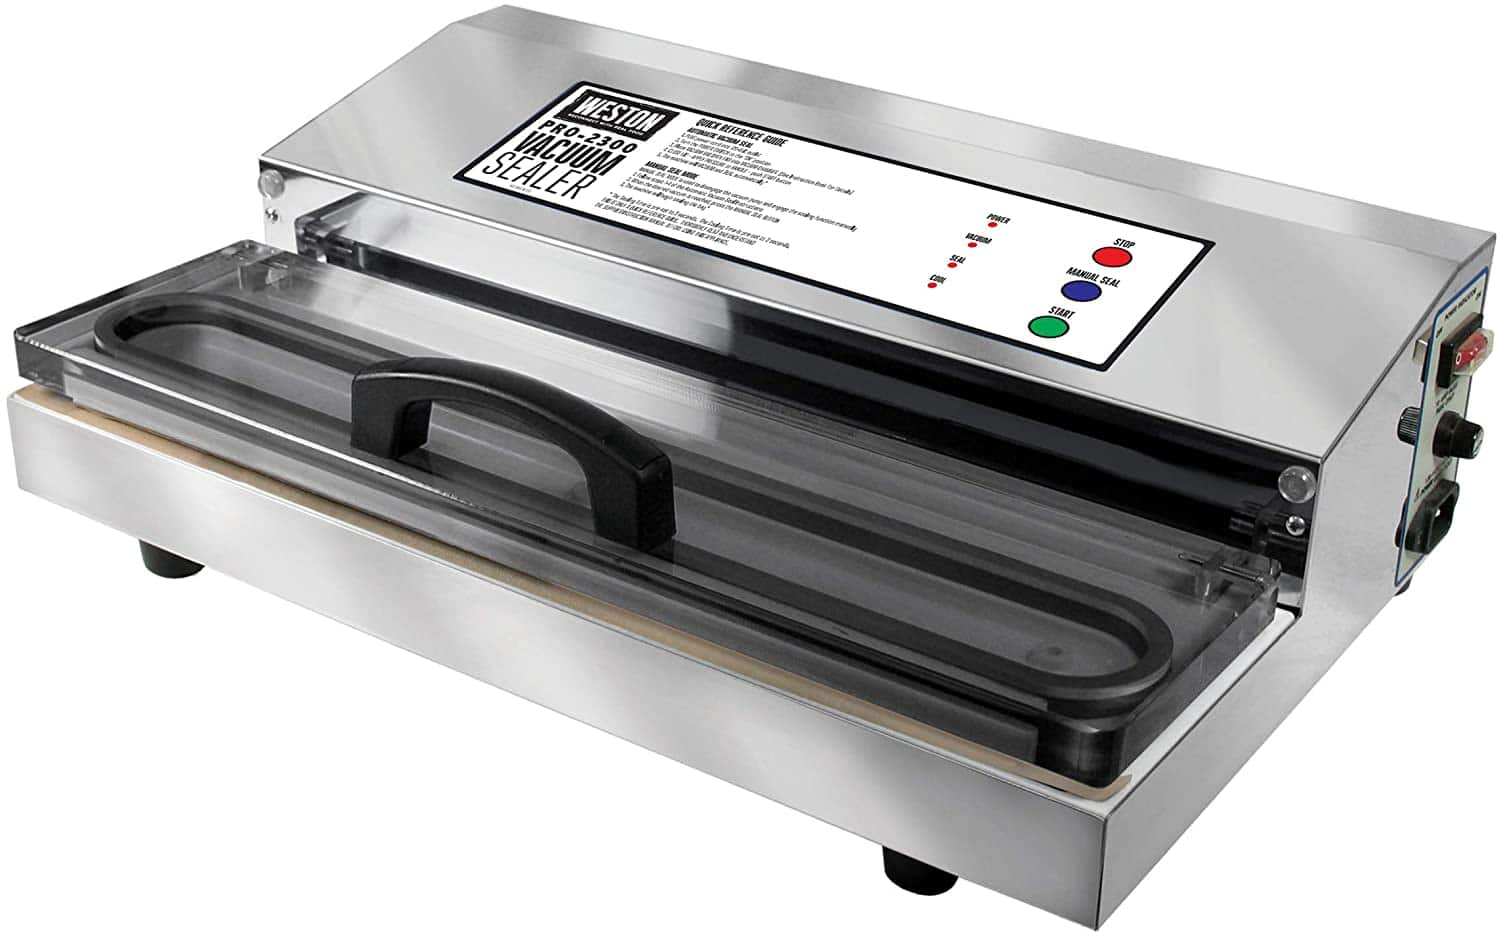 Amazon.com: Weston Pro-2300 Commercial Grade Stainless Steel Vacuum Sealer (65-0201), Kitchen & Dining $299.99